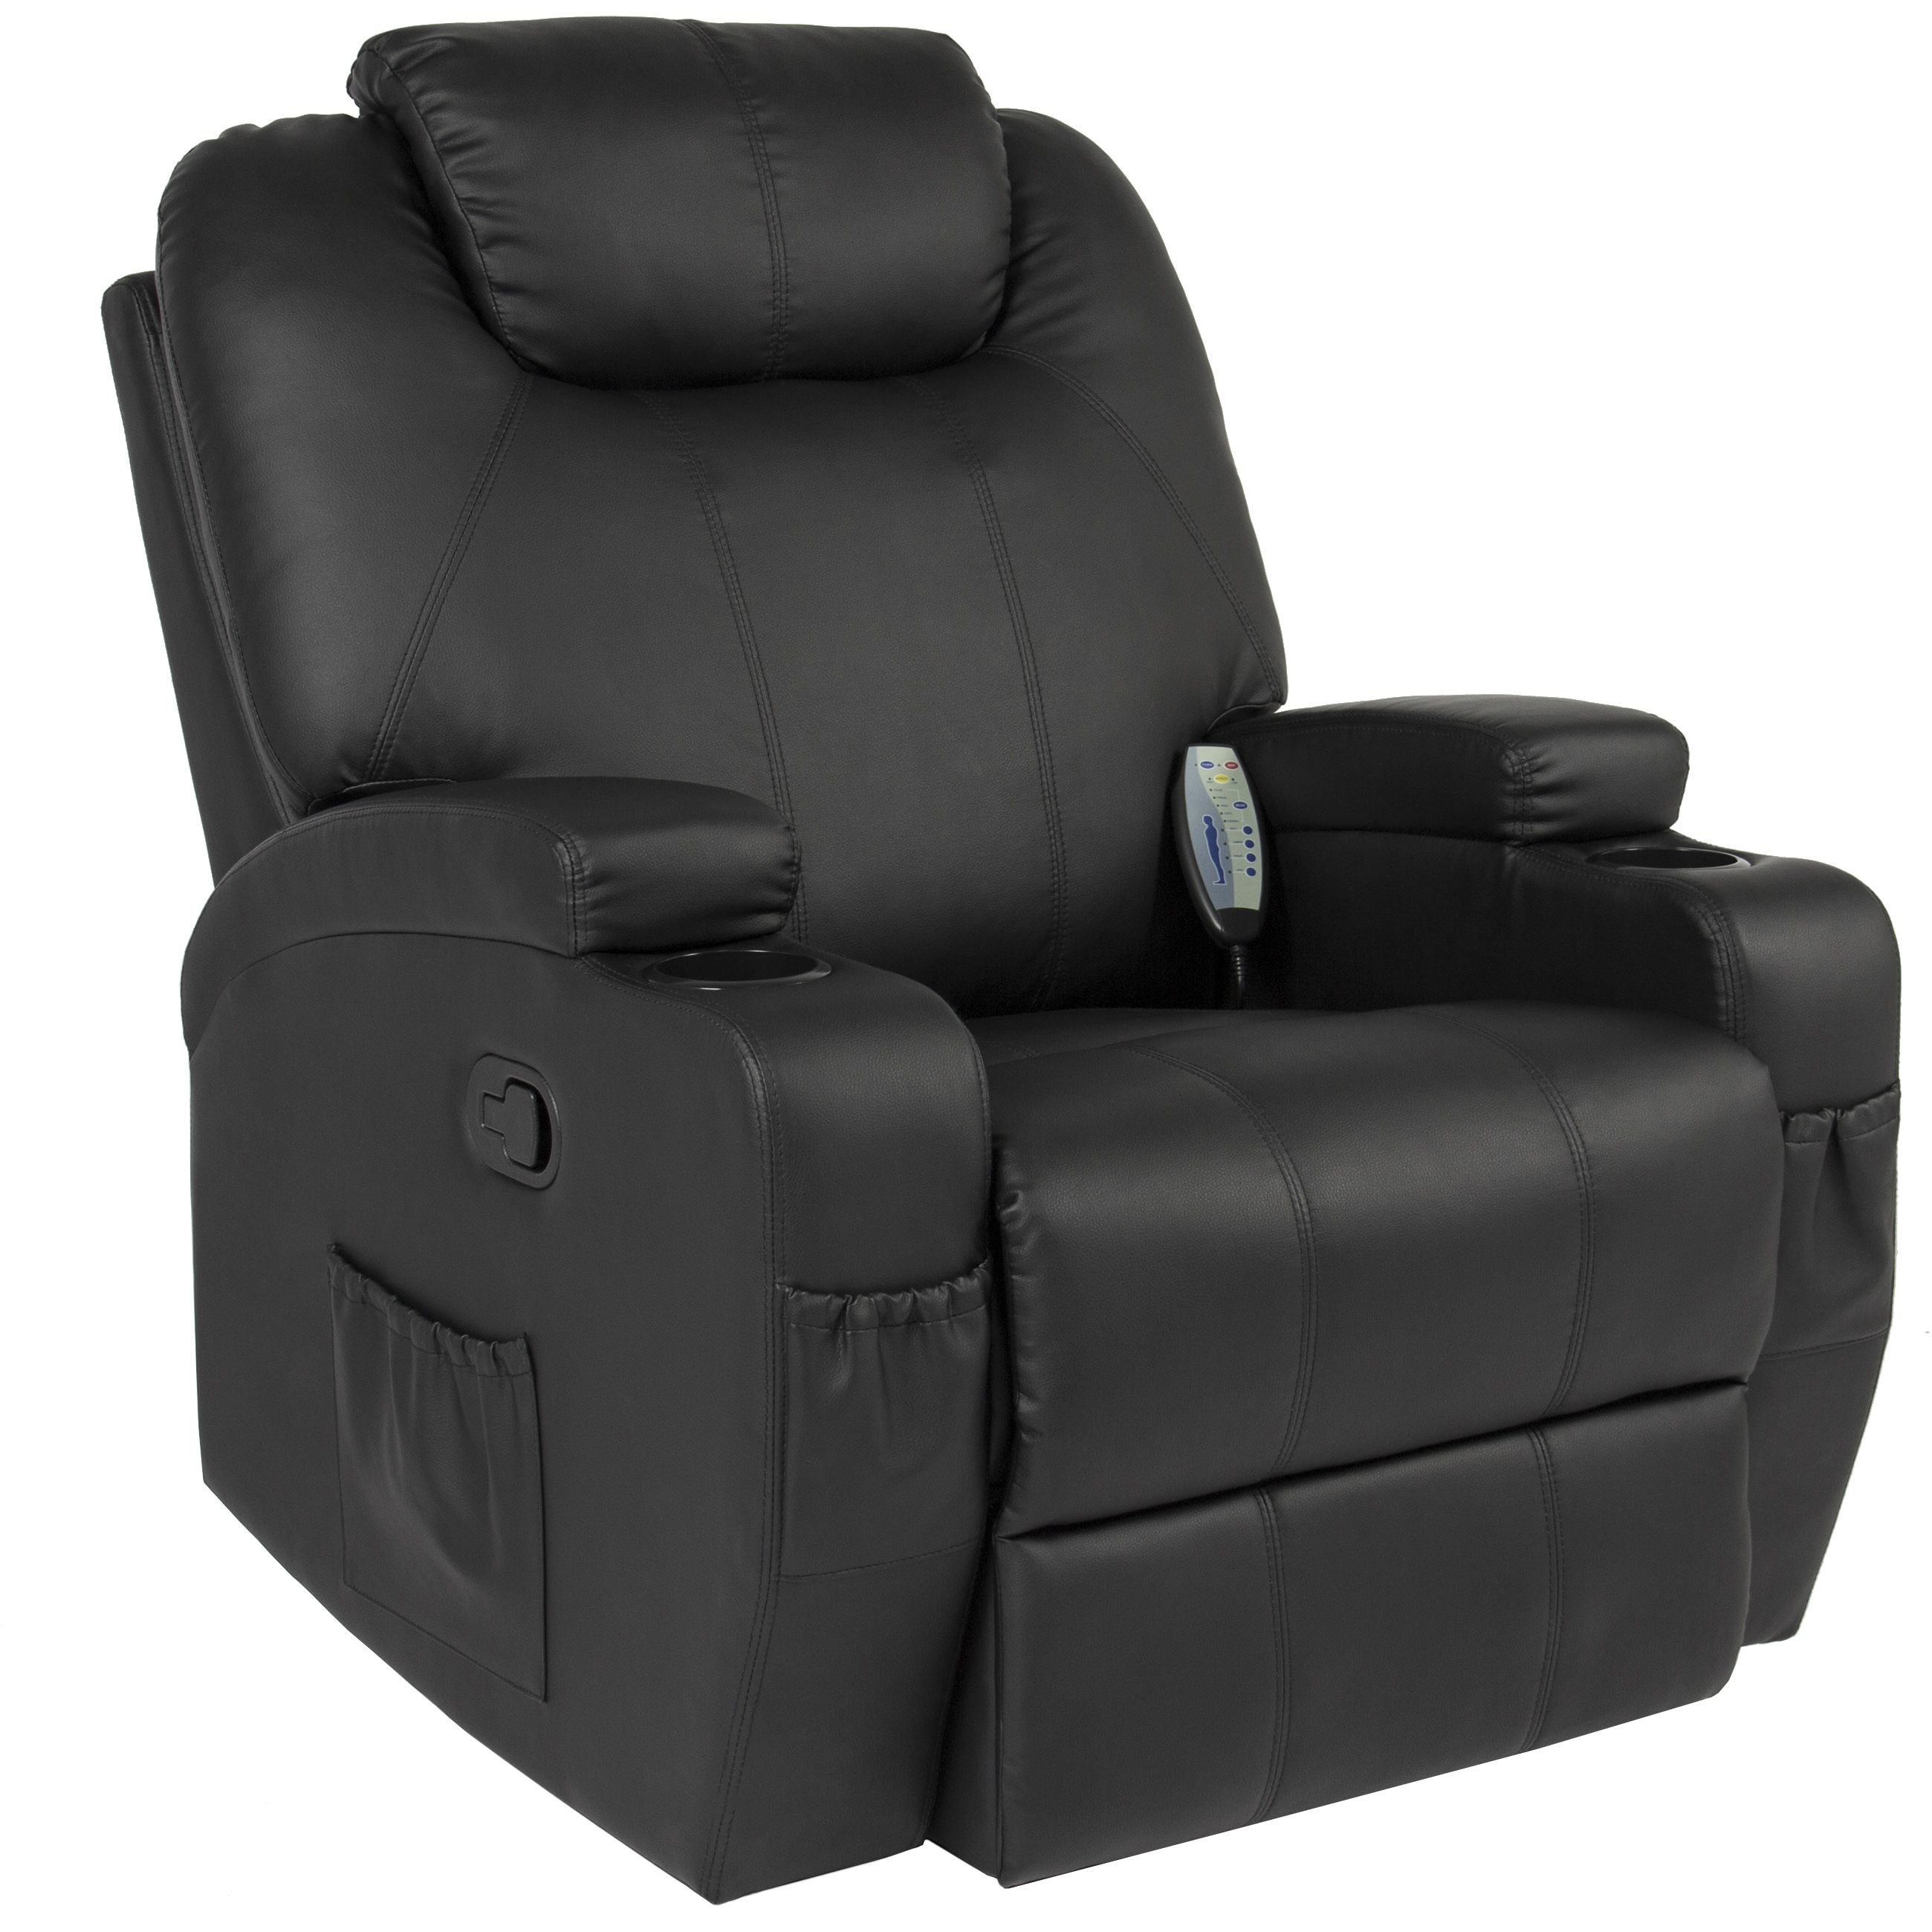 Best Choice Products Executive Swivel Massage Recliner w/ Control 5 Heat u0026 Massage Modes 2 Cup Holders 92lbs (Black) - Walmart.com  sc 1 st  Walmart & Best Choice Products Executive Swivel Massage Recliner w/ Control ... islam-shia.org